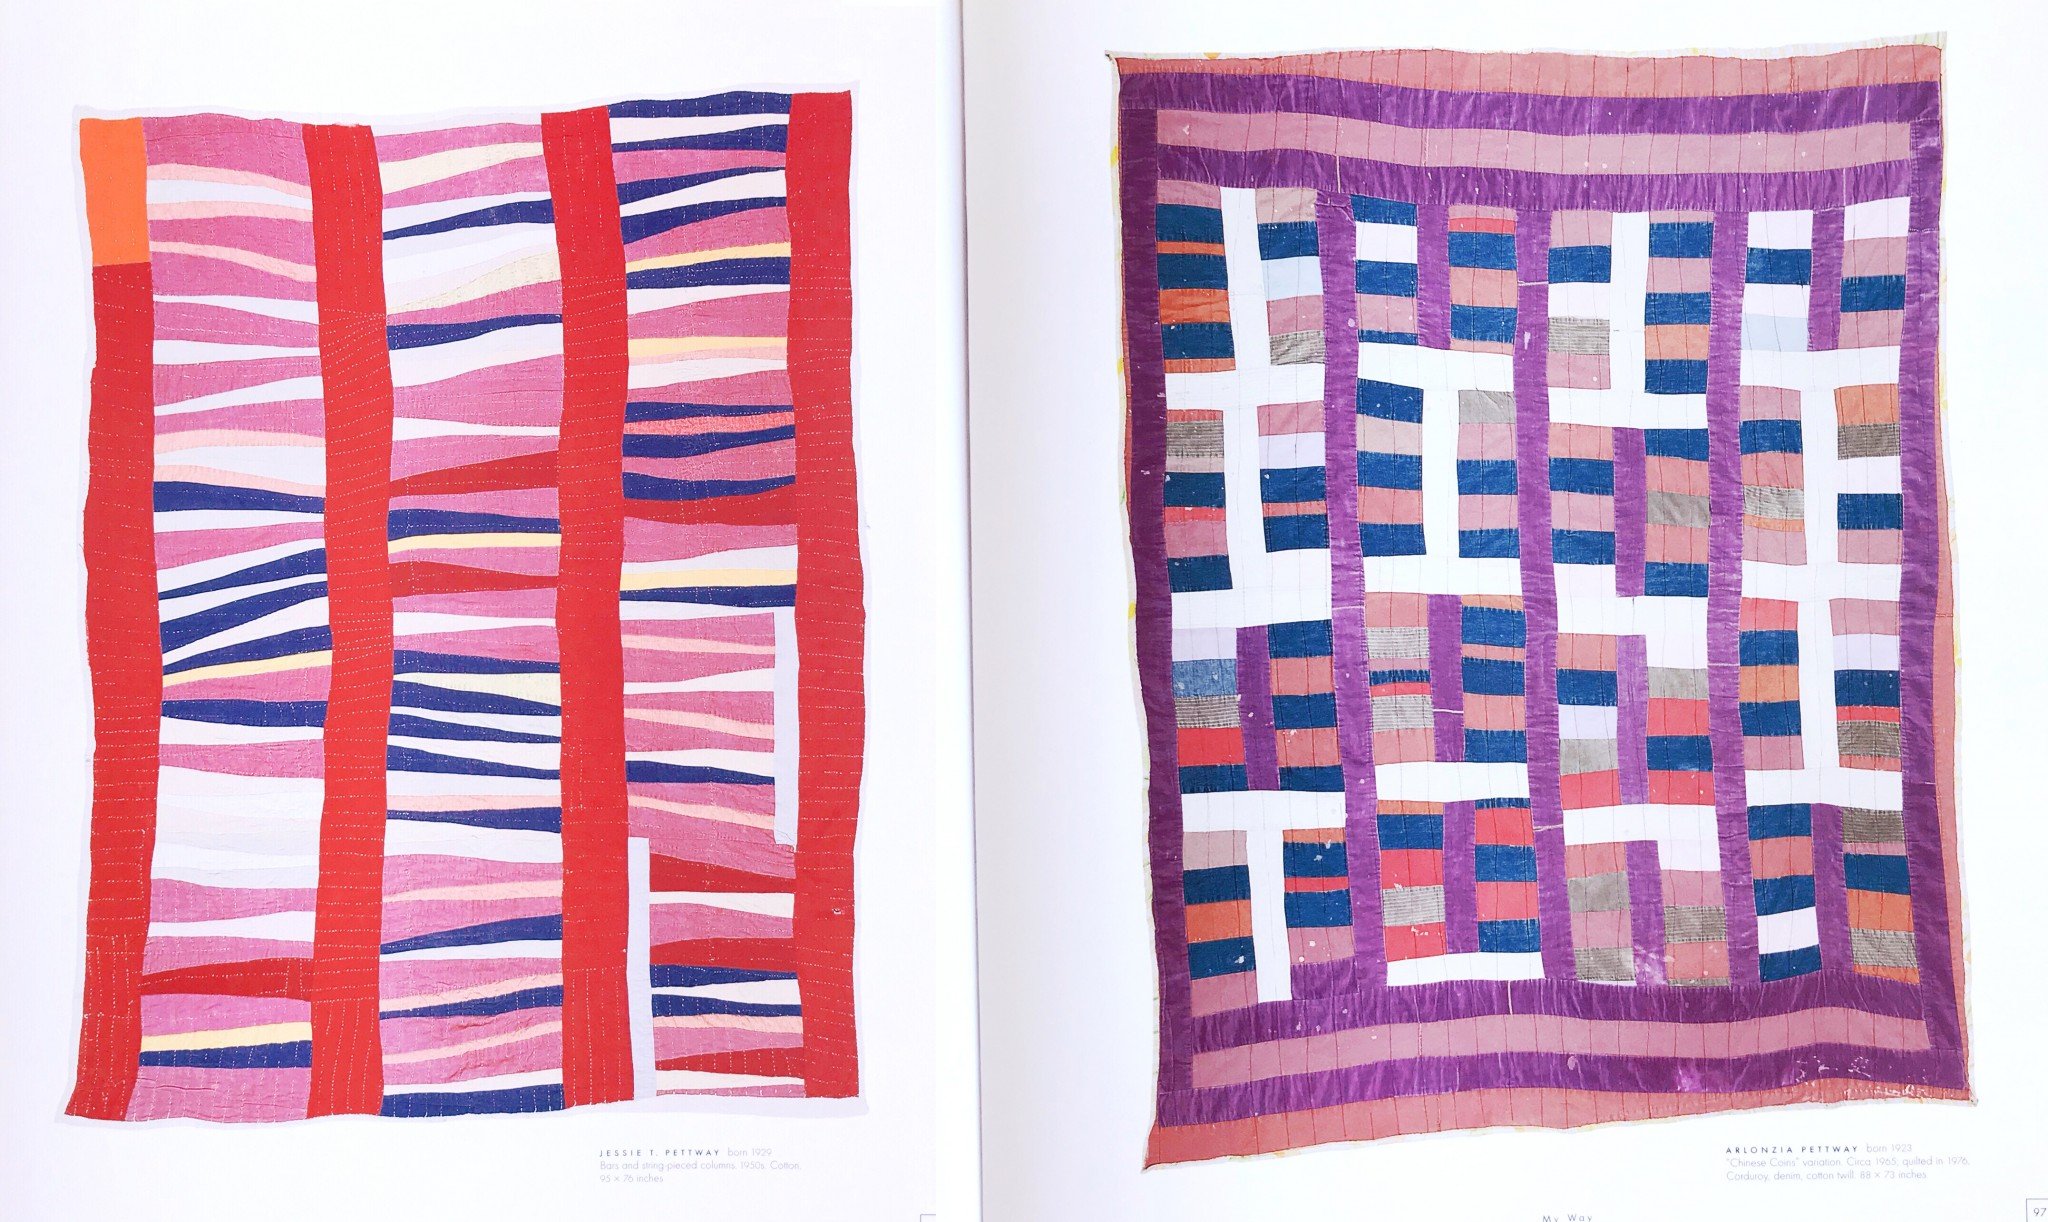 Quilts by Jessie T. Pettway and Arlonzia Pettway